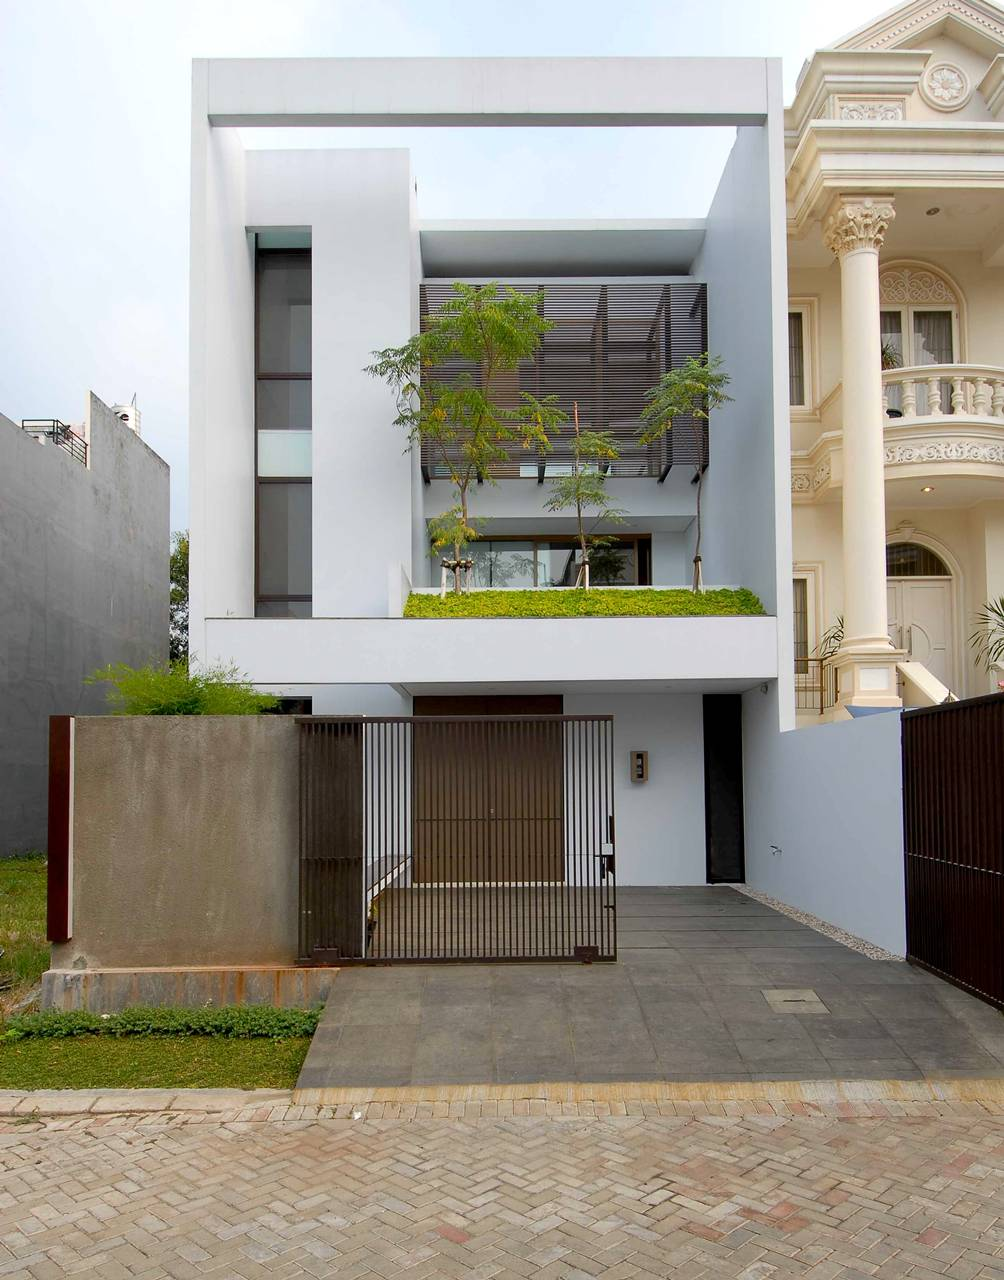 Less is more minimalism amid affluence in north jakarta malaysia premier property and real - Minimalist home ...